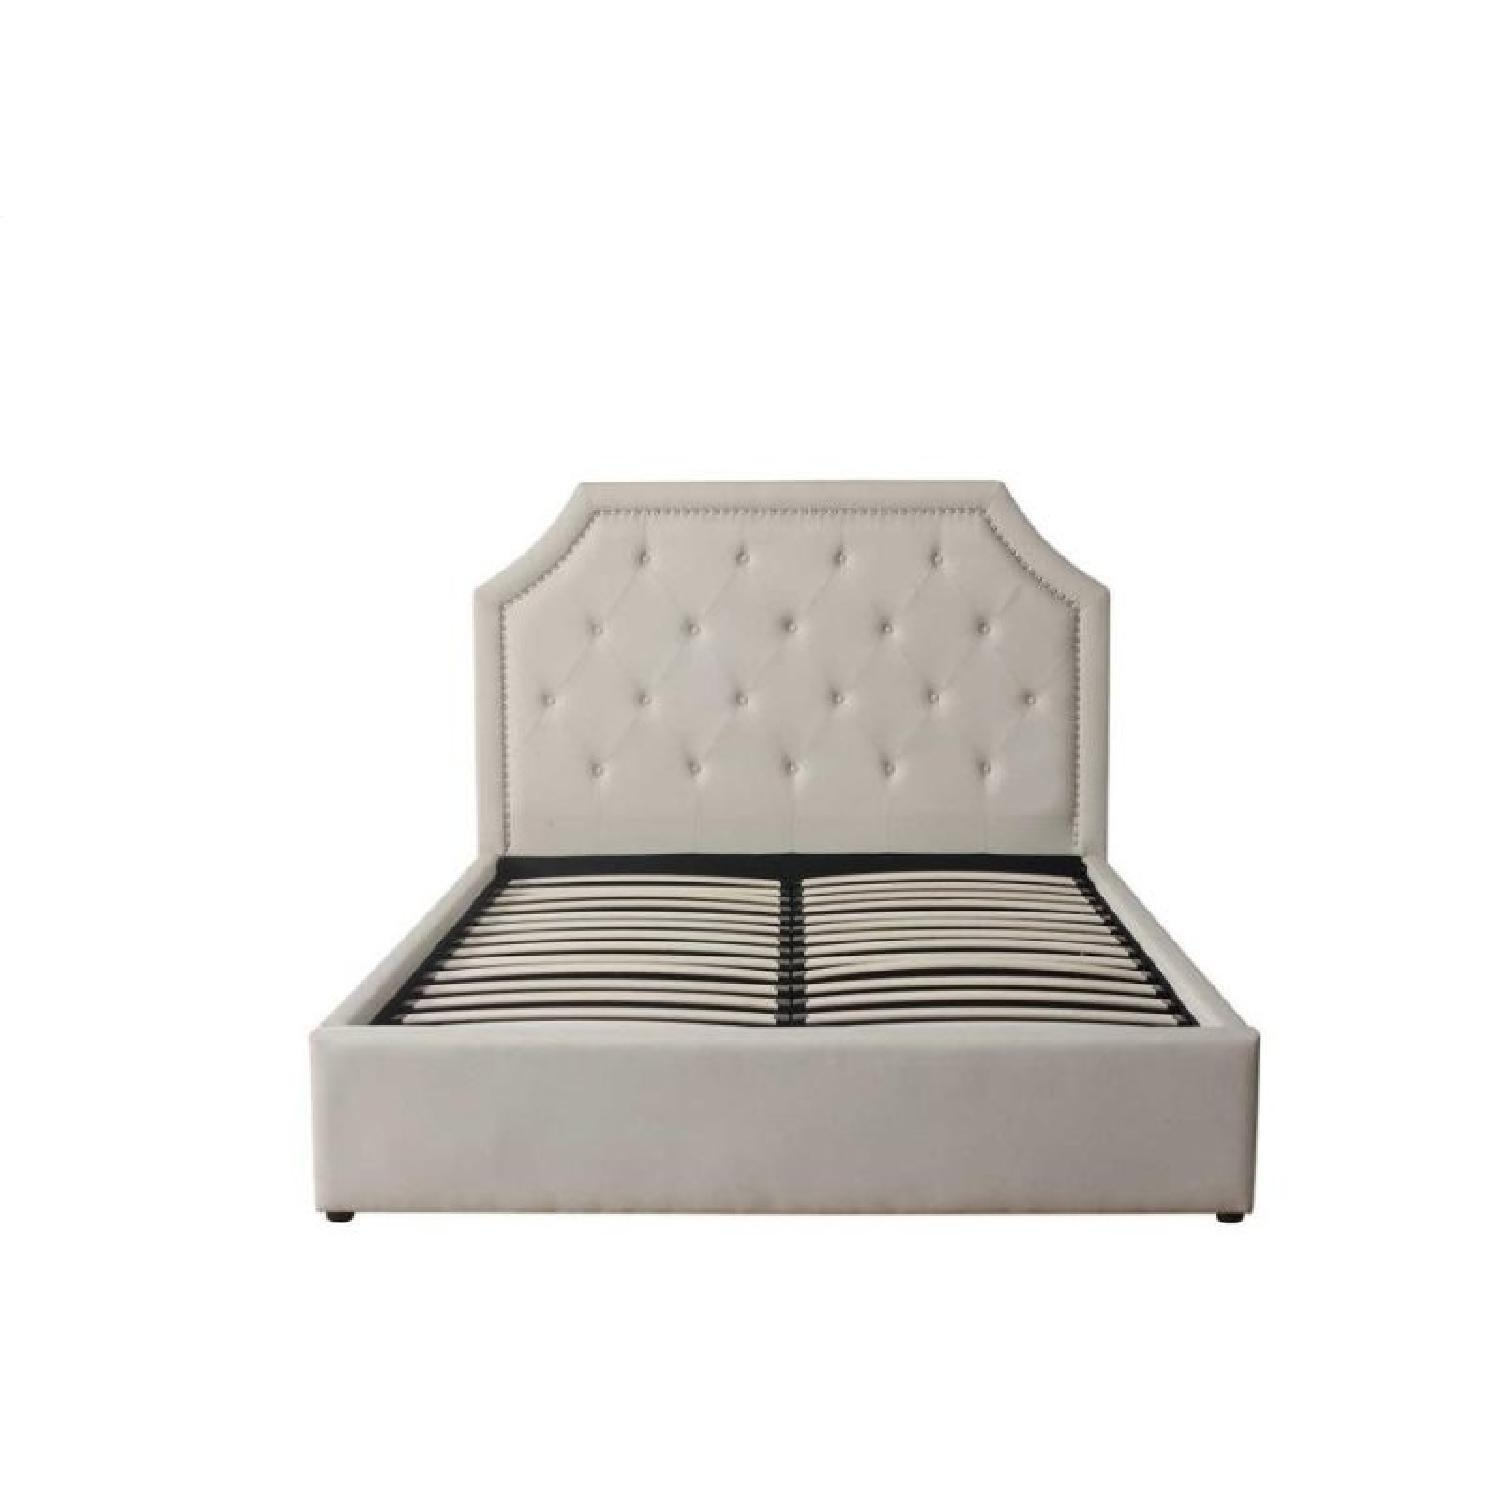 Full Size Bed in Beige Fabric Upholstery w/ Lift-Up Storage